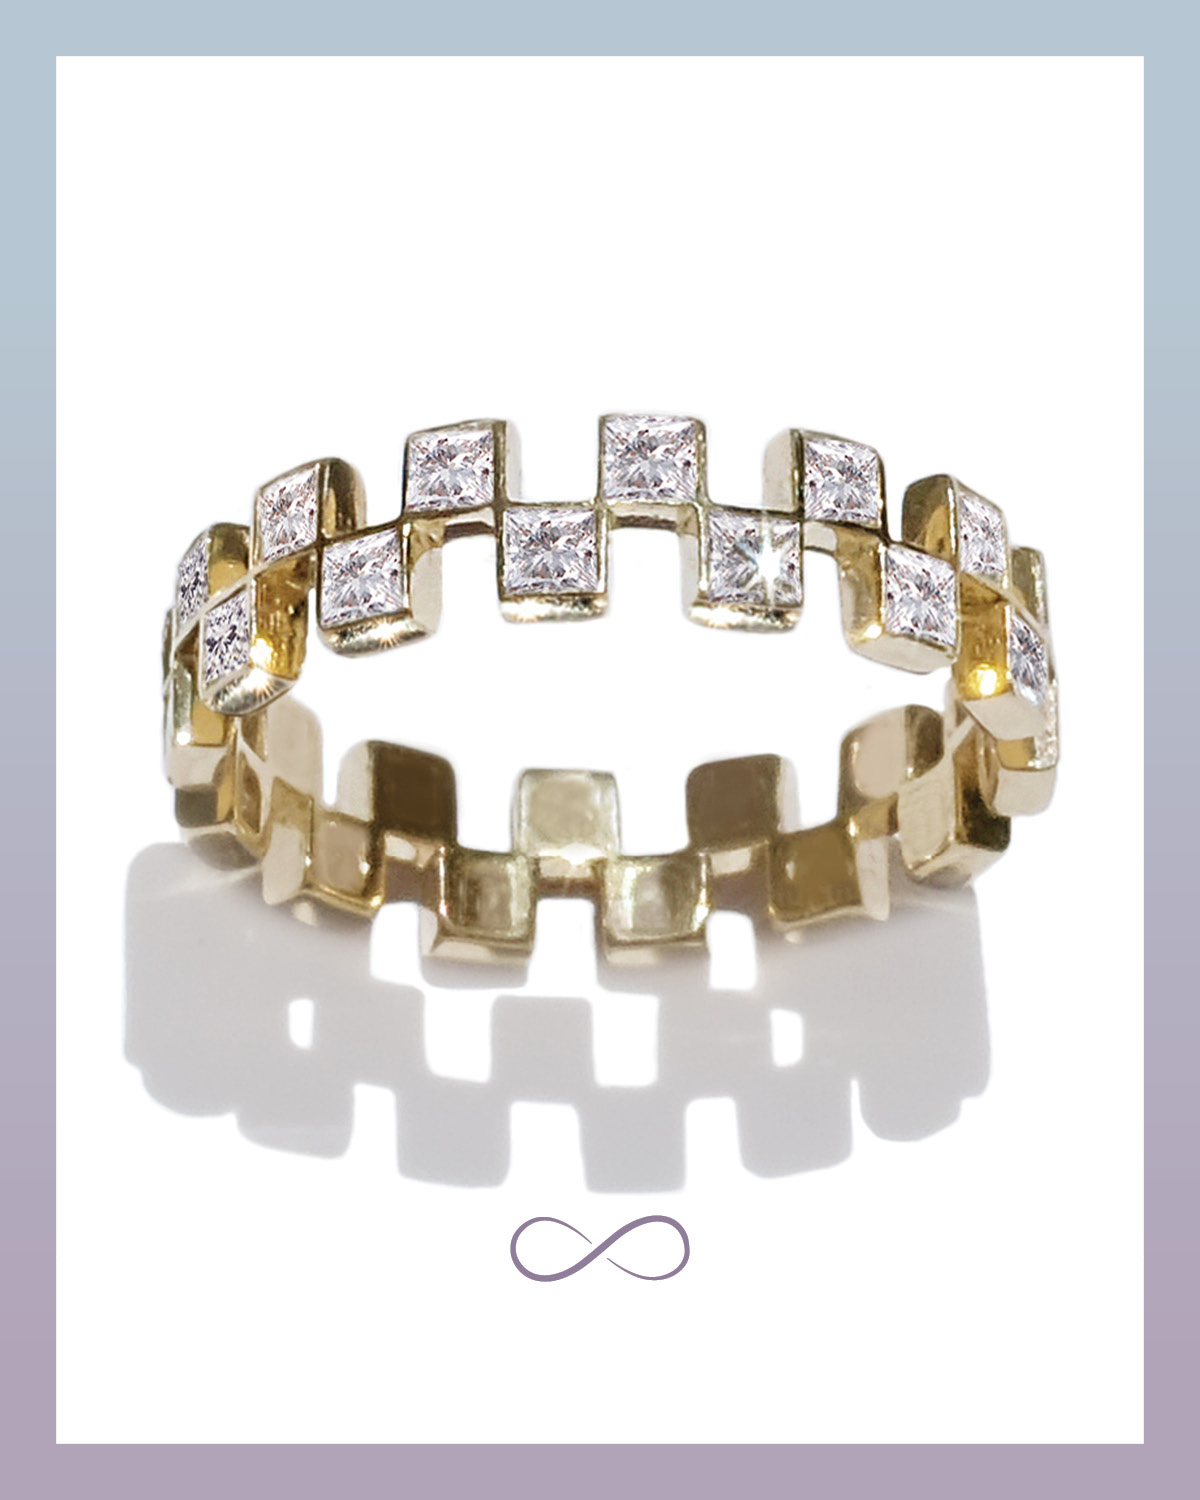 Anerise invisible set princess cut diamond eternity band from Kat Kim that features a checker board design set in yellow gold